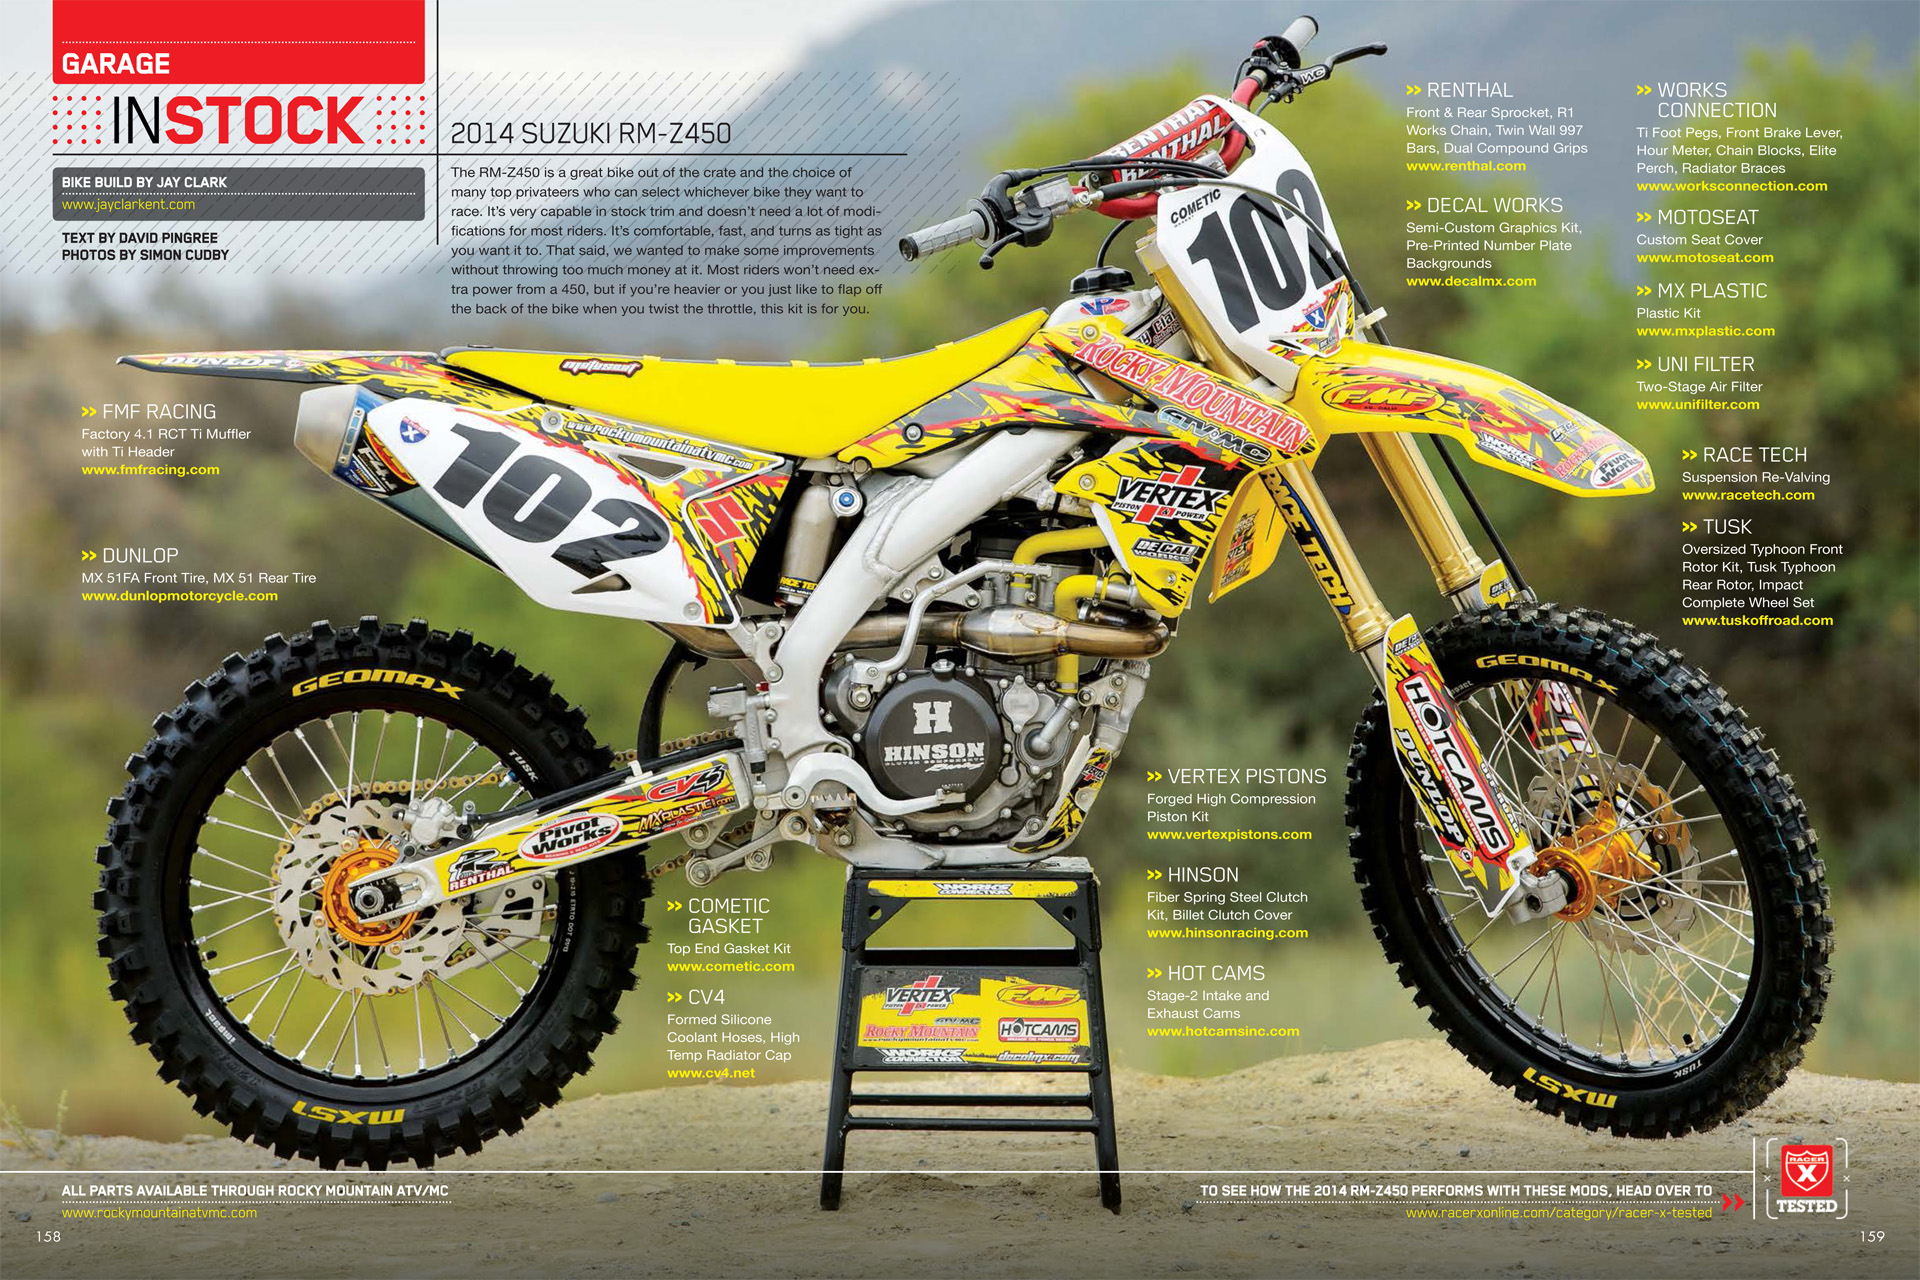 project rmz450 january issue of racer x jay clark enterprises